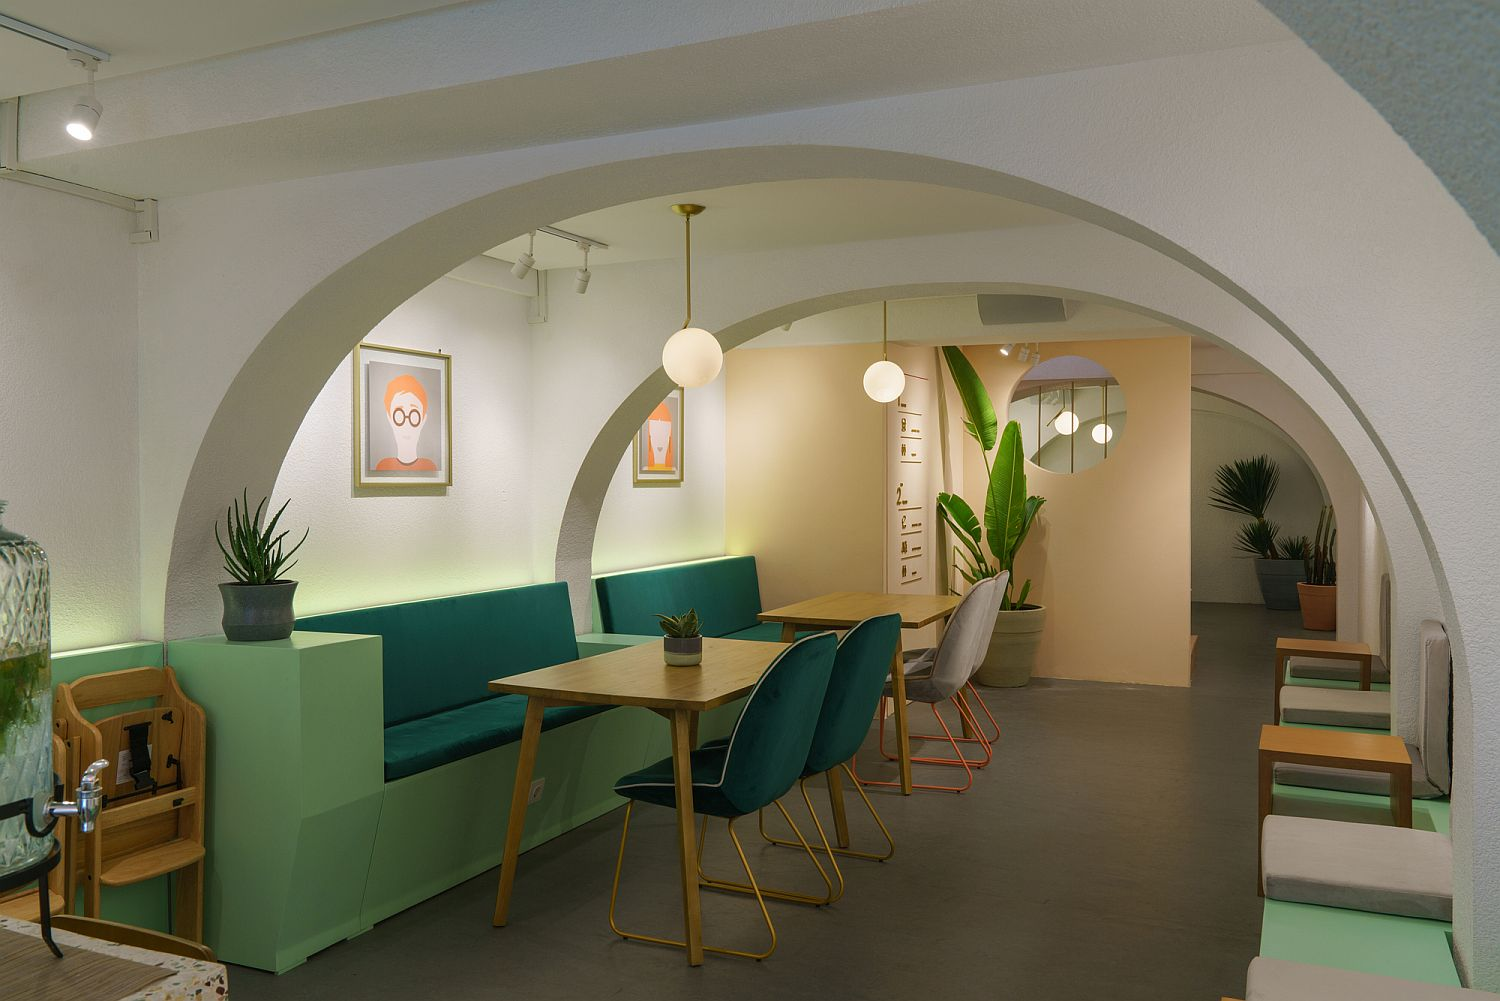 Series of arches gives the cafe interior a unique and classic appeal